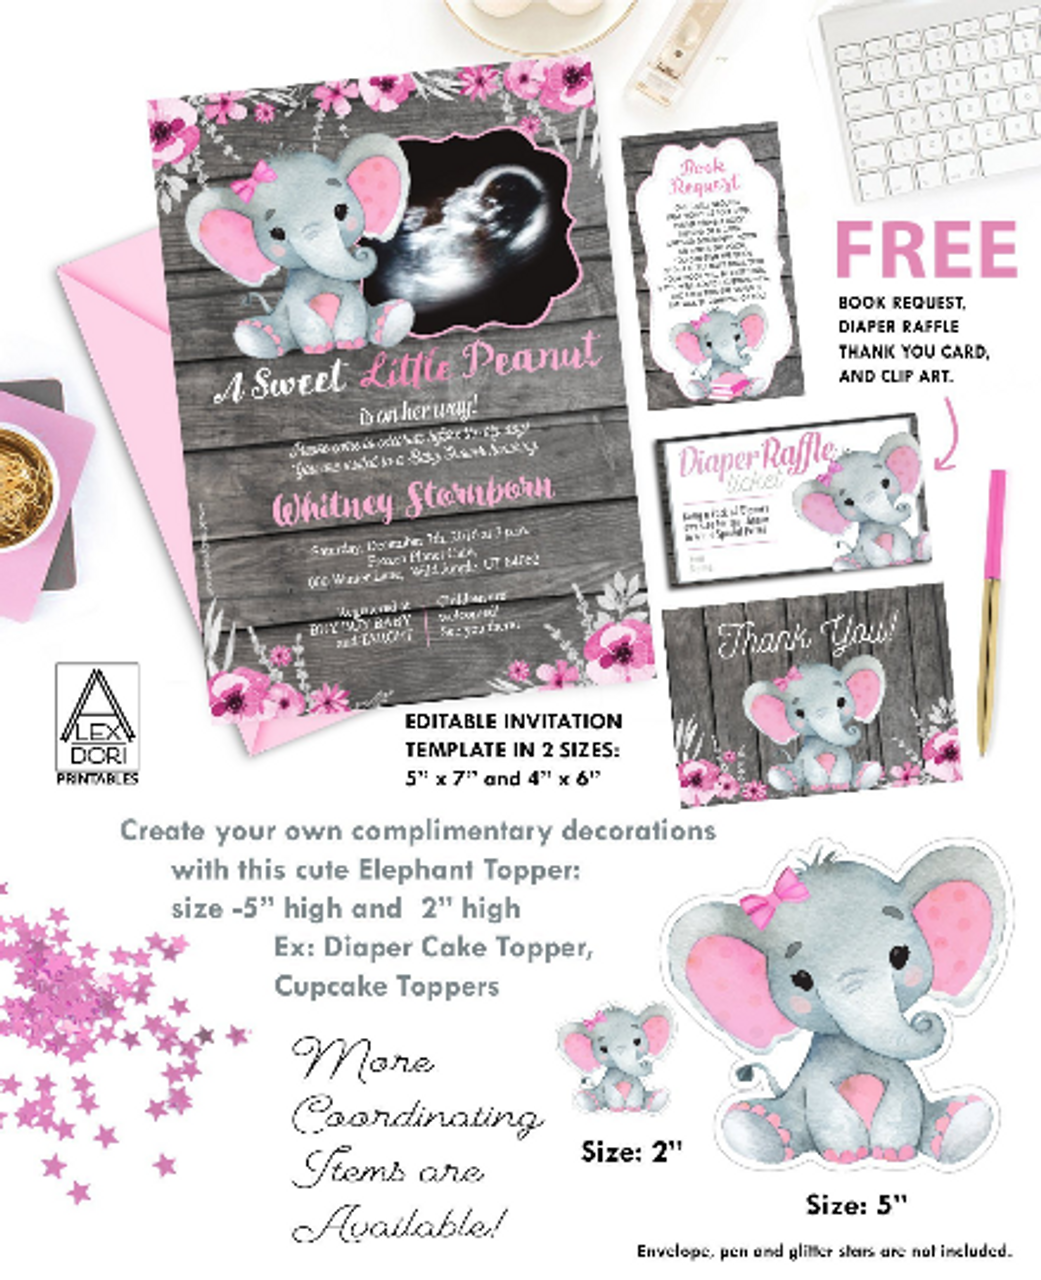 graphic relating to Free Elephant Printable titled Elephant Red GrayBaby Shower Ultrasound Invitation, Wood History -Printable Picture Invitation - Peanut Invite-Free of charge Diaper Raffle, e-book